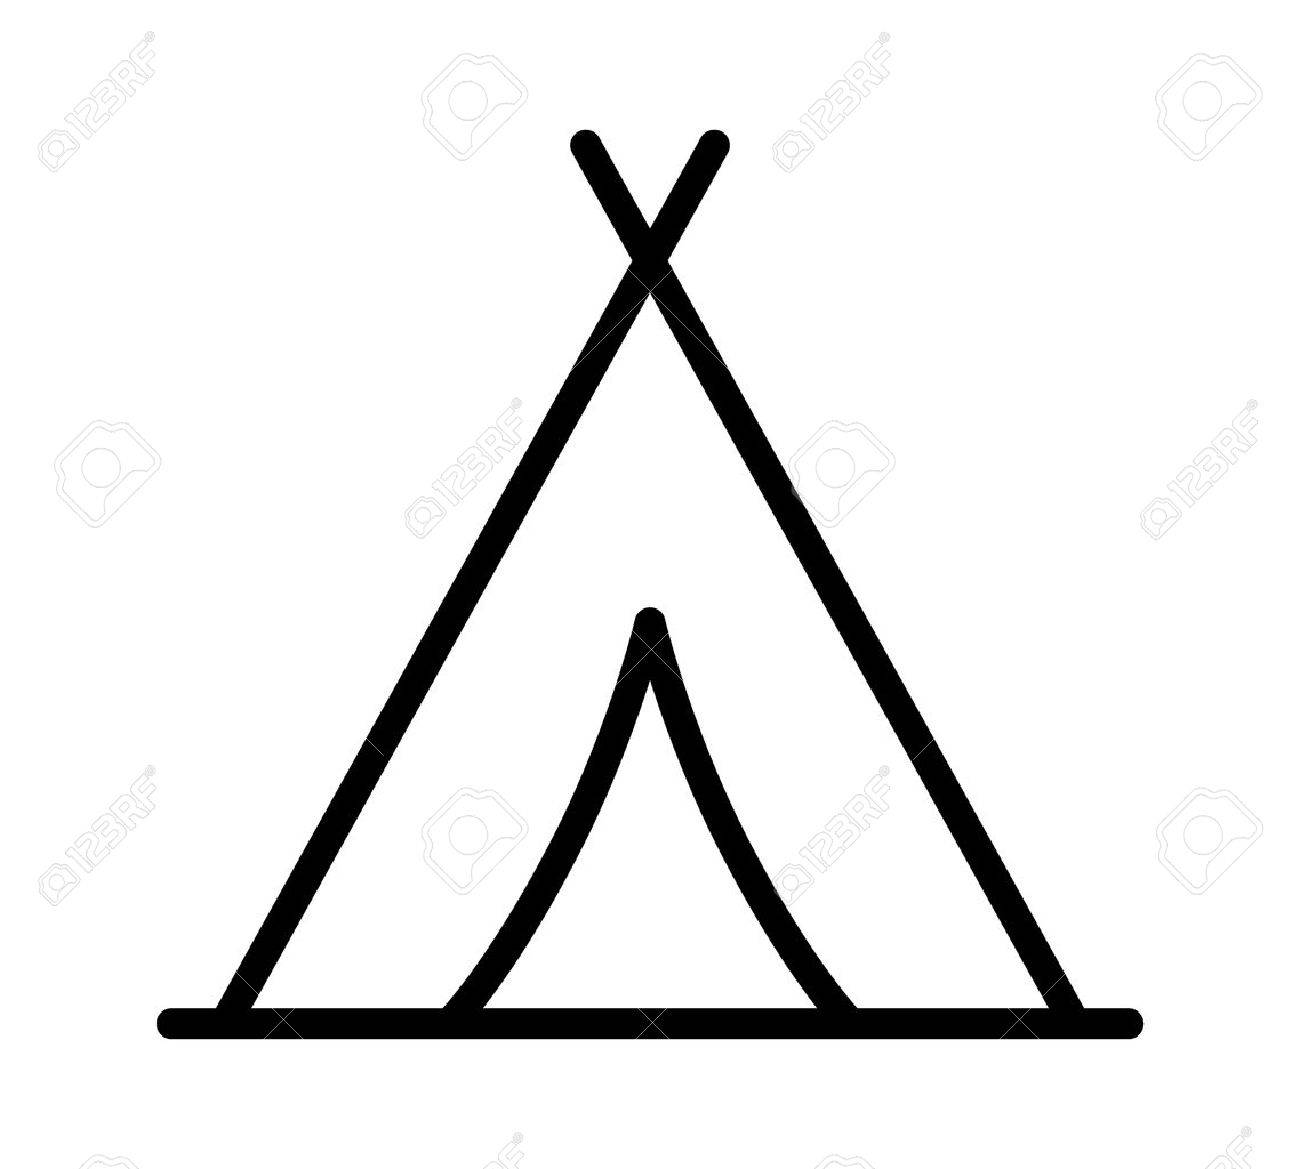 Camping tent at outdoor camp or tipi / teepee line art icon for...